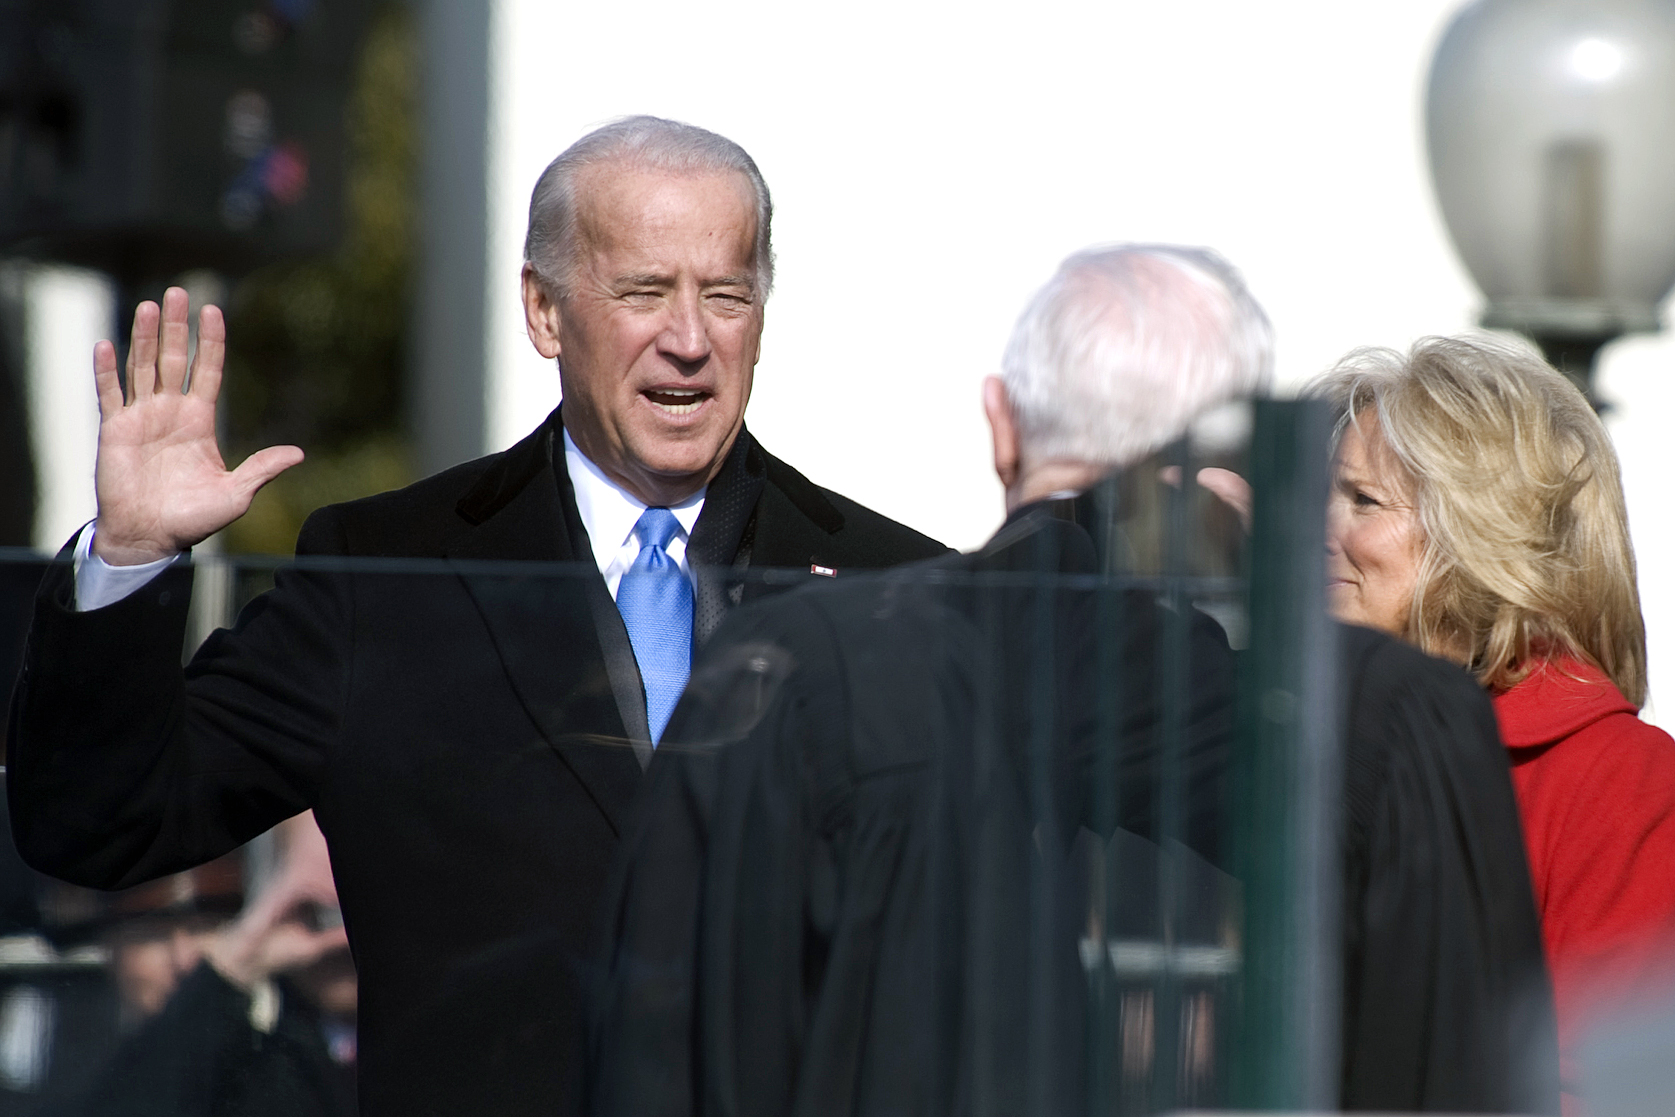 Joe Biden takes the presidential oath on January 20, 2021 to become 46th president of the United States, photo by Petty Officer 1st Class Chad J. McNeeley, USN, Public domain, via Wikimedia Commons